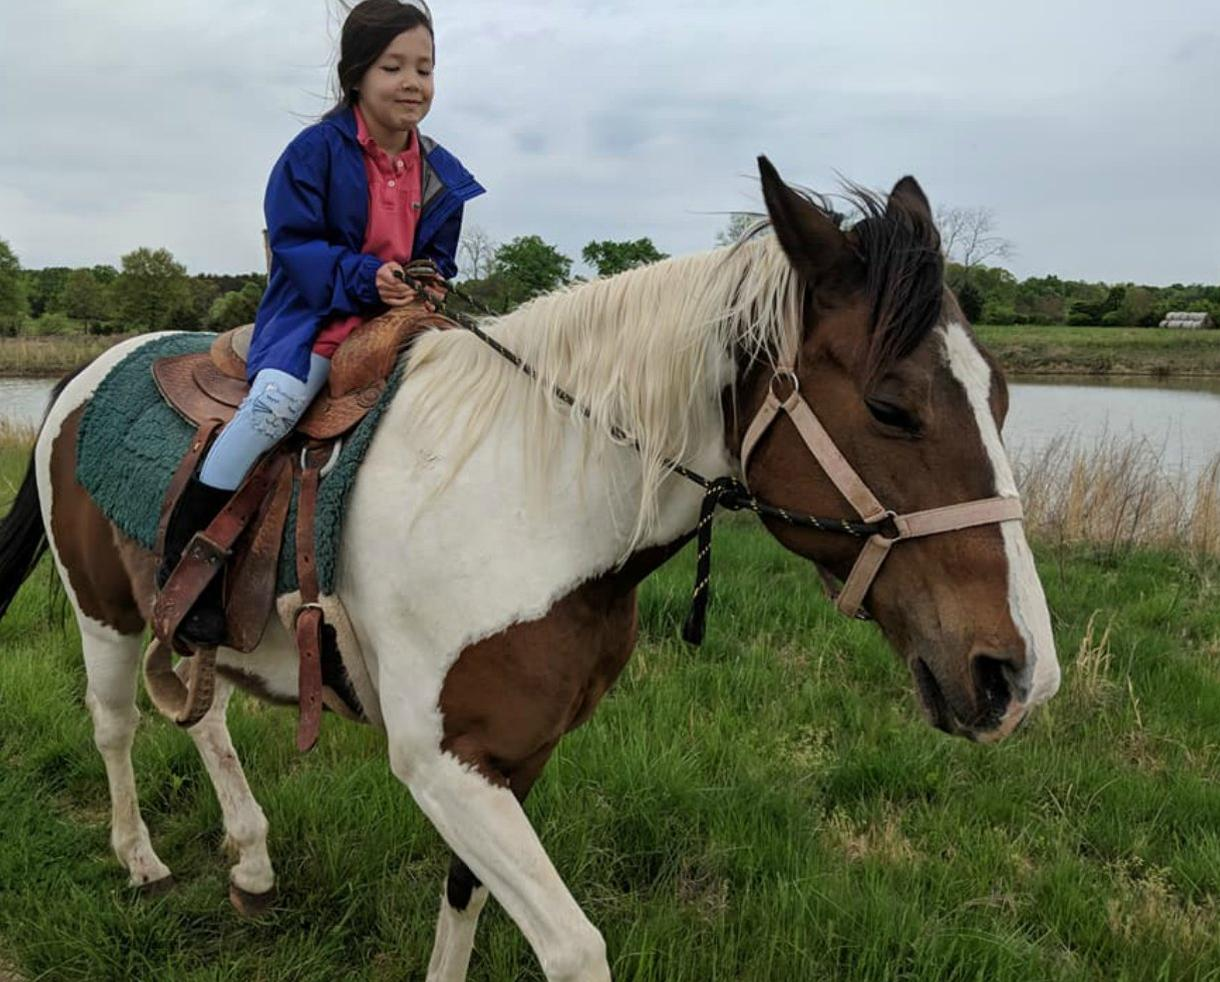 Castle Strasburg Horseback Riding Lessons or Trail Rides for One Person